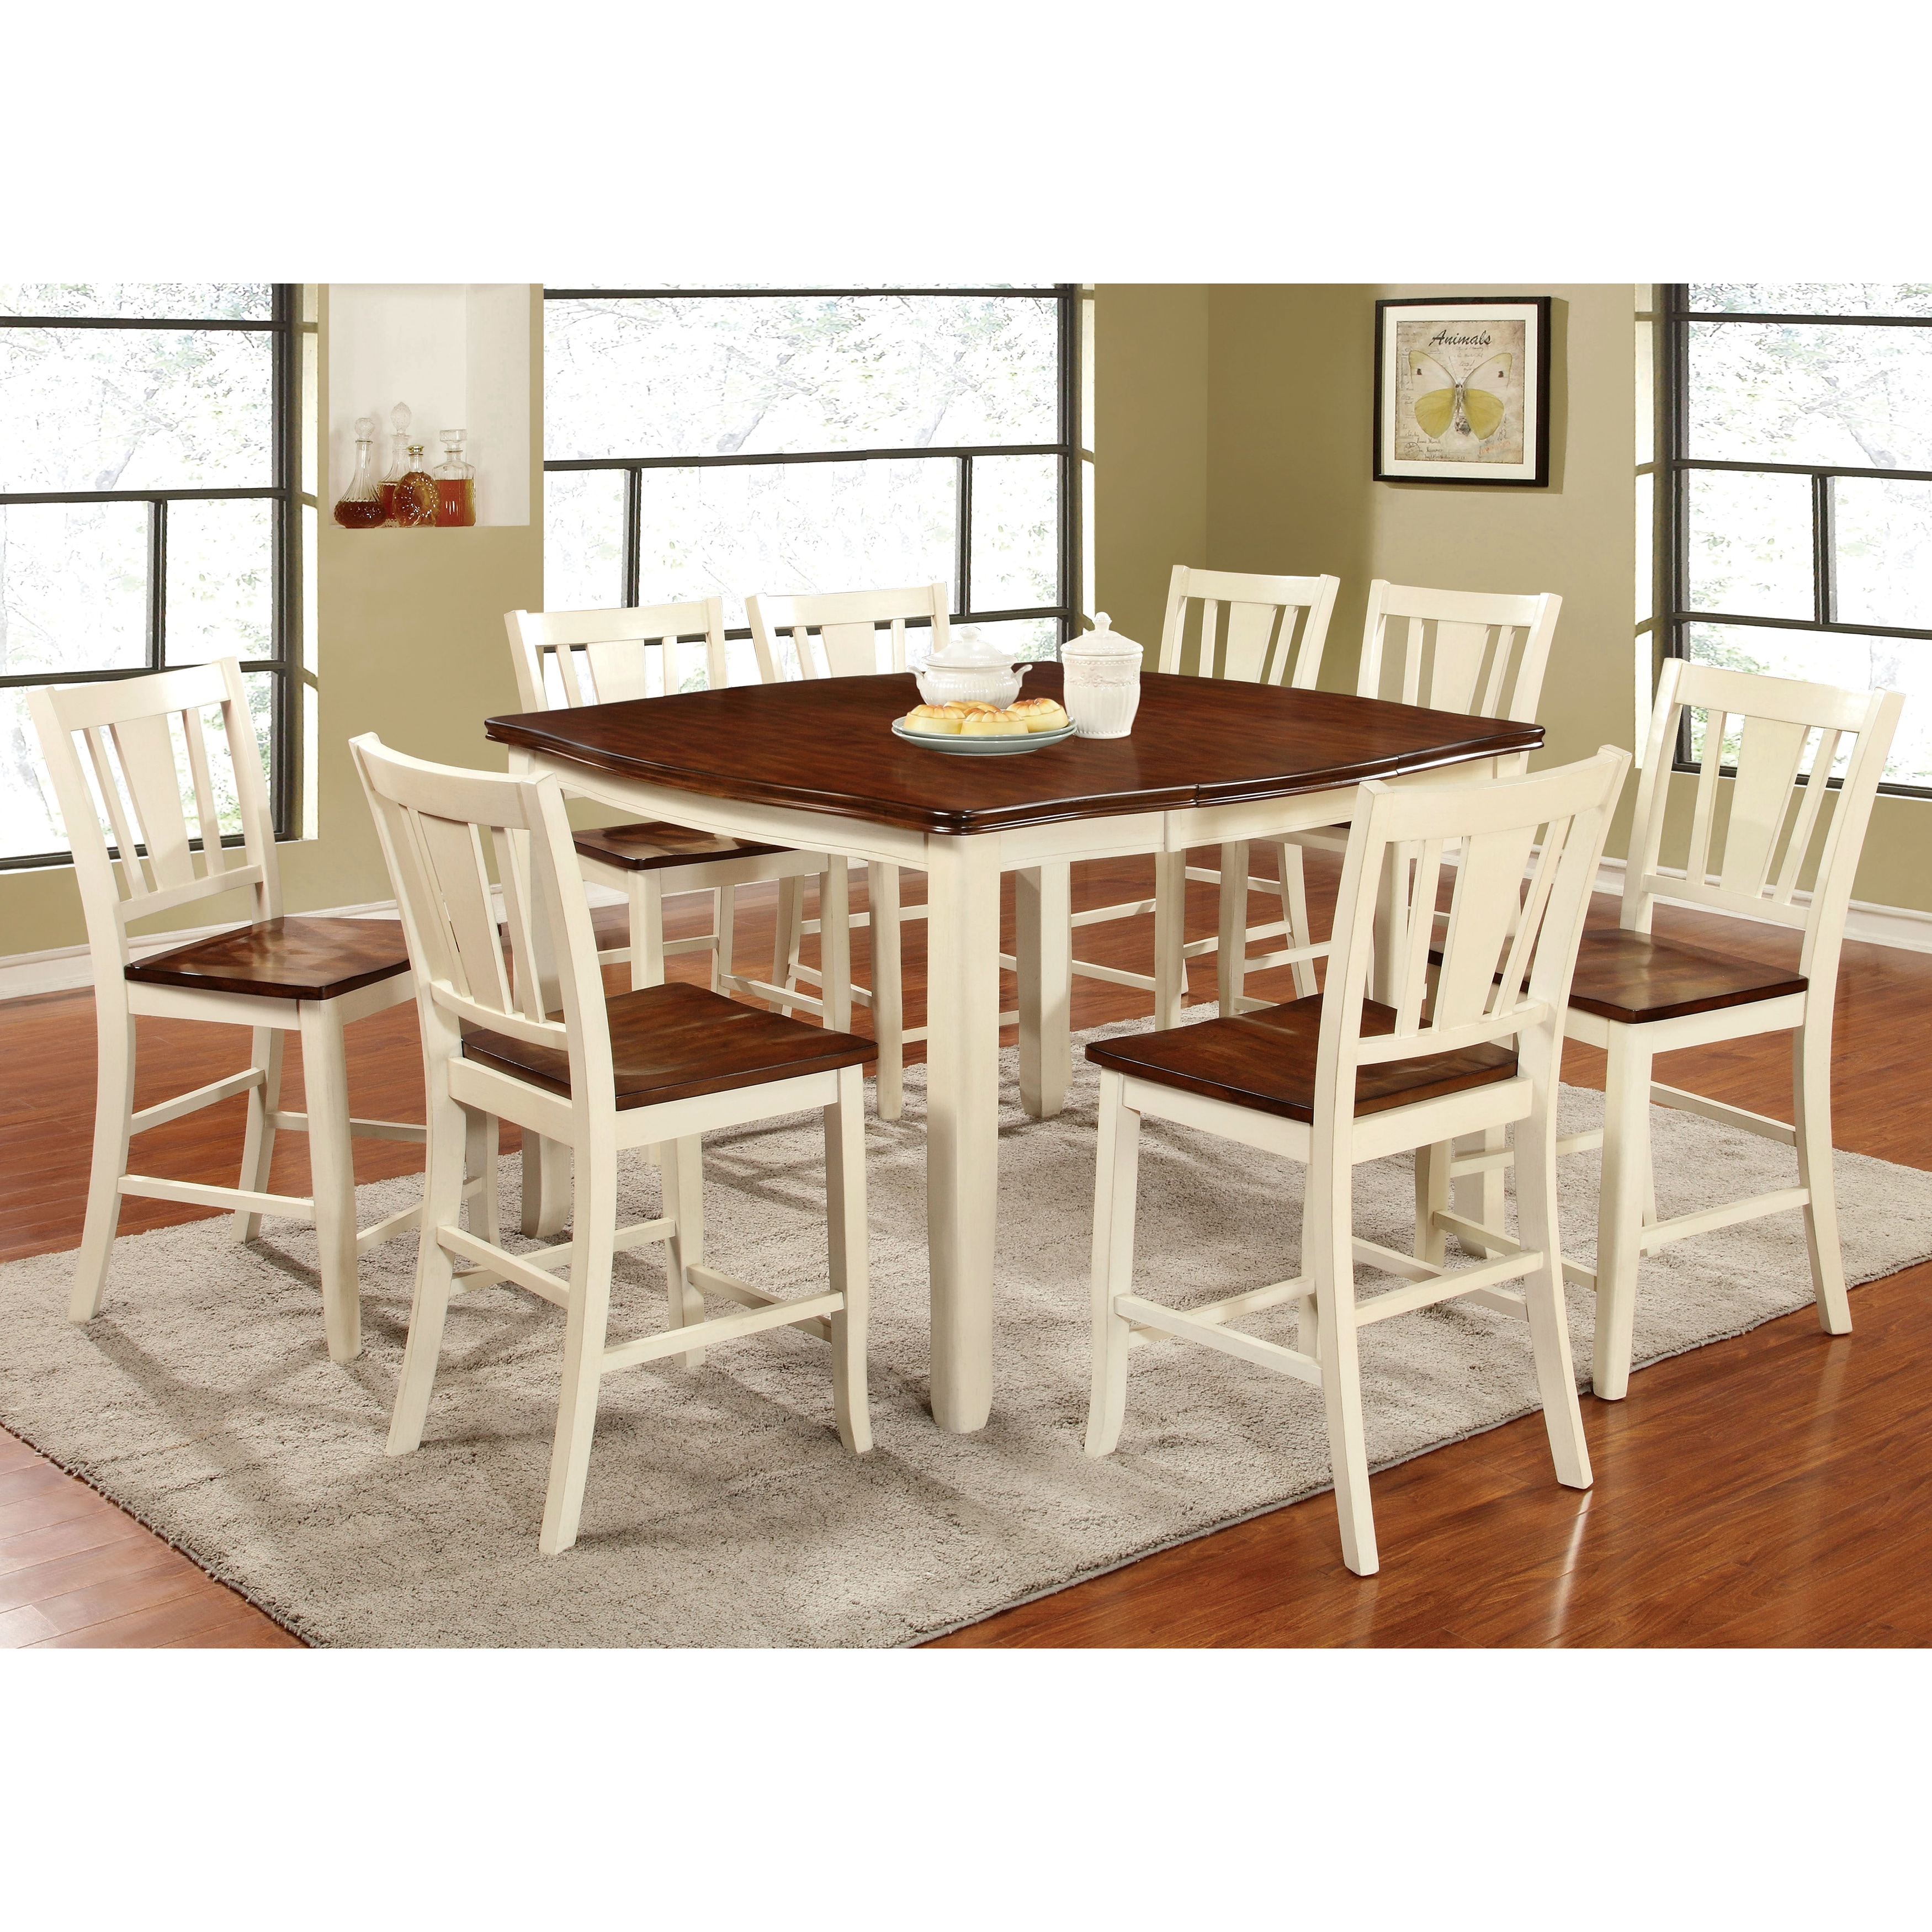 Furniture of America Betsy Jane 9-Piece Country Style Cou...